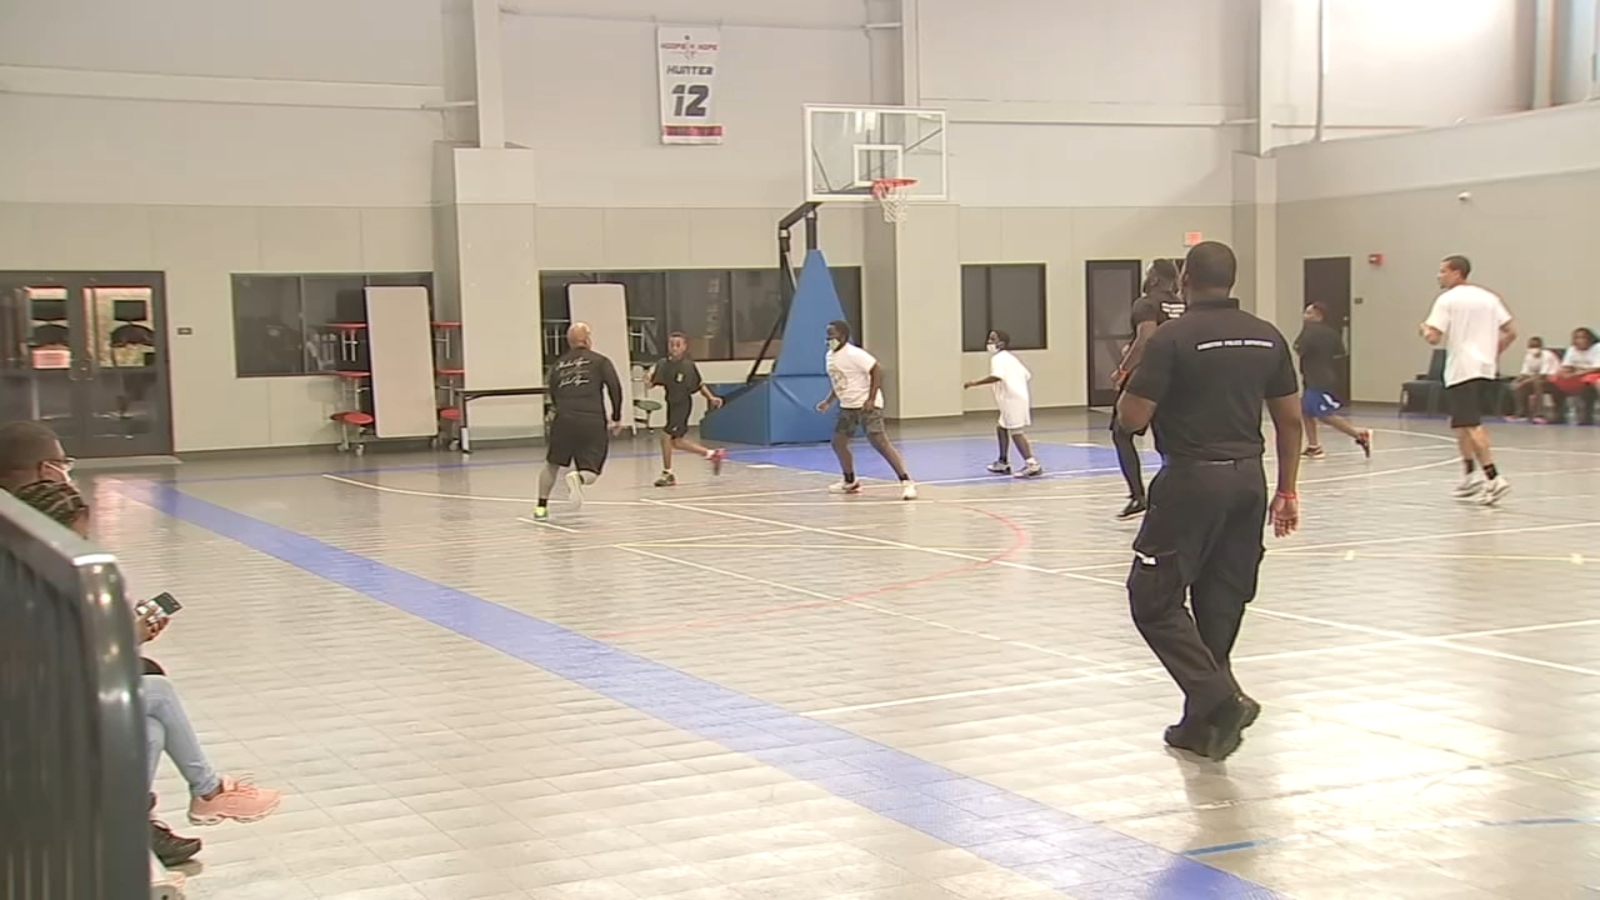 Houston law enforcement work to build health relationships with kids through basketball